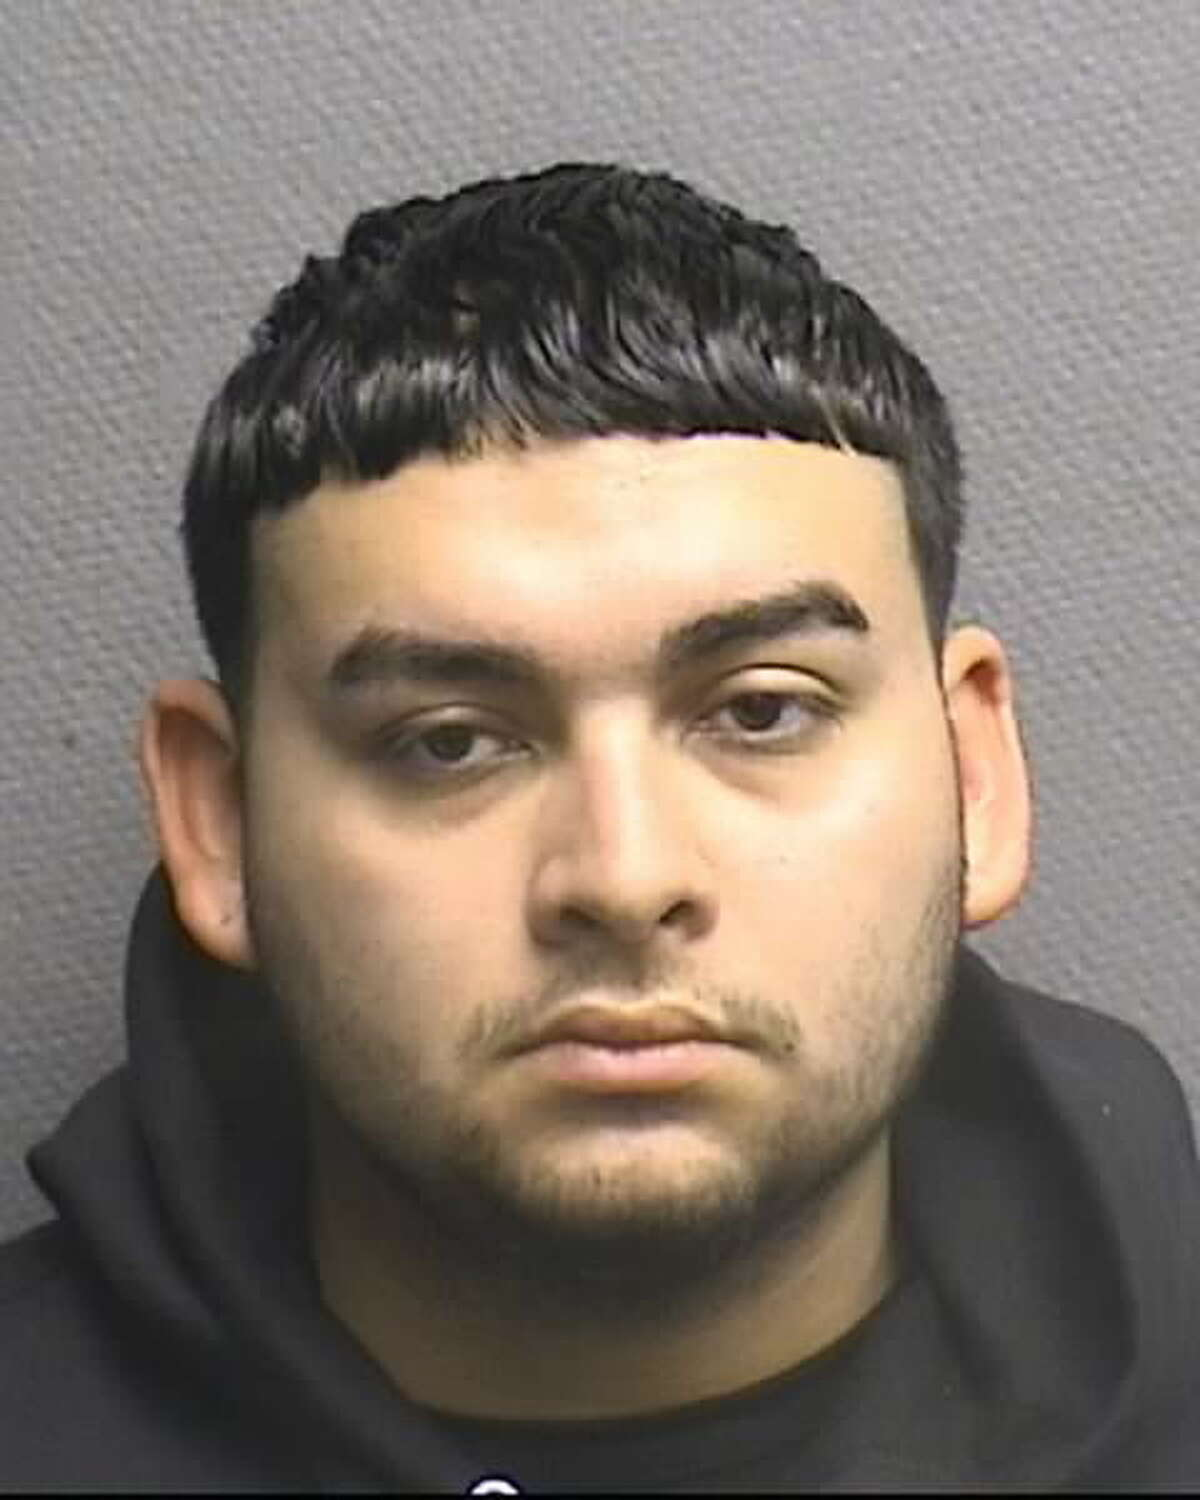 Eddie M. Herrera is charged with aggravated assault in the death of his girlfriend Jacqueline Gomez on prom night 2014.